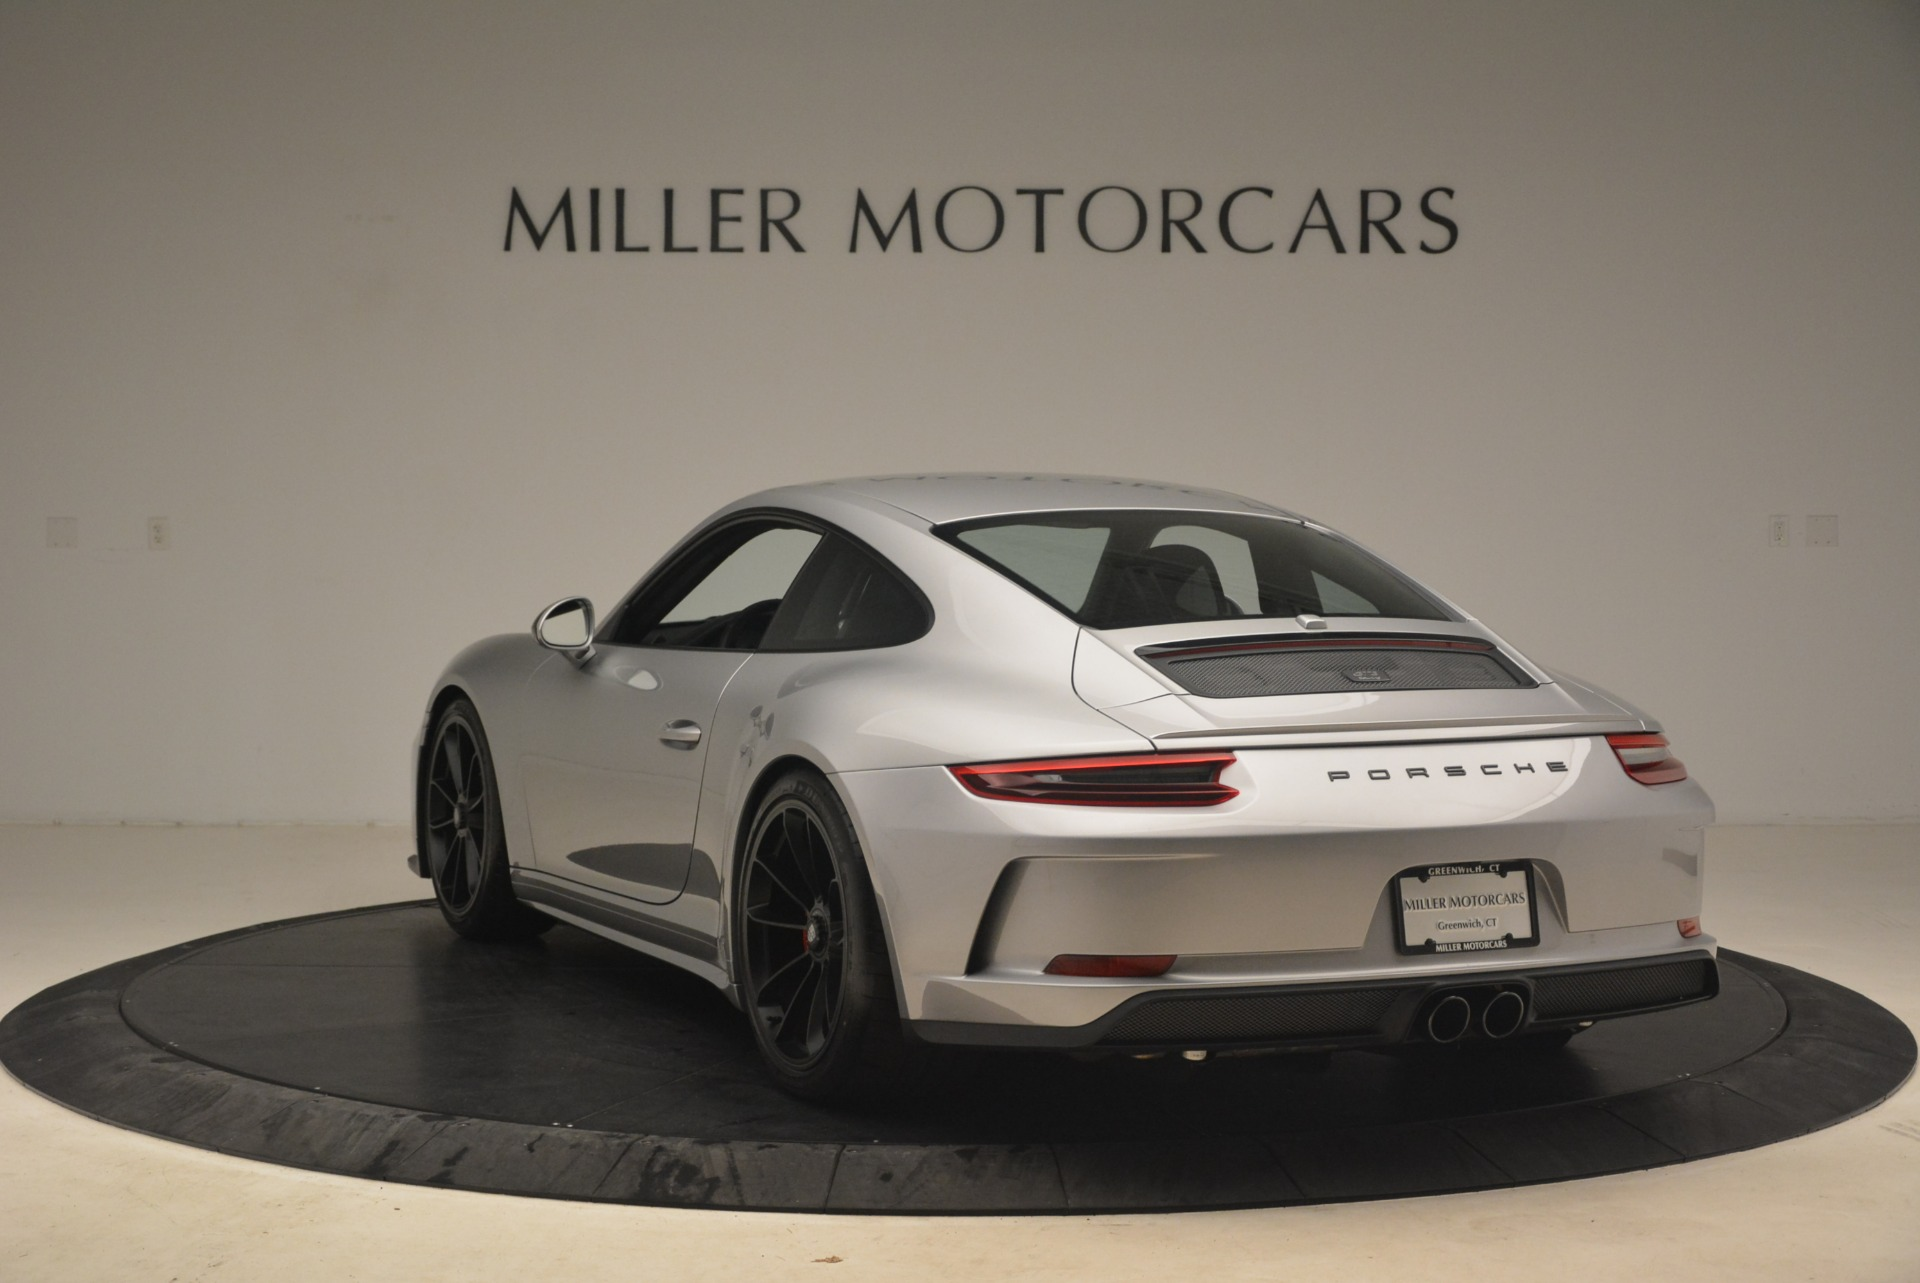 Pre Owned 2018 Porsche 911 Gt3 Touring For Sale Miller Motorcars Stock F1896a